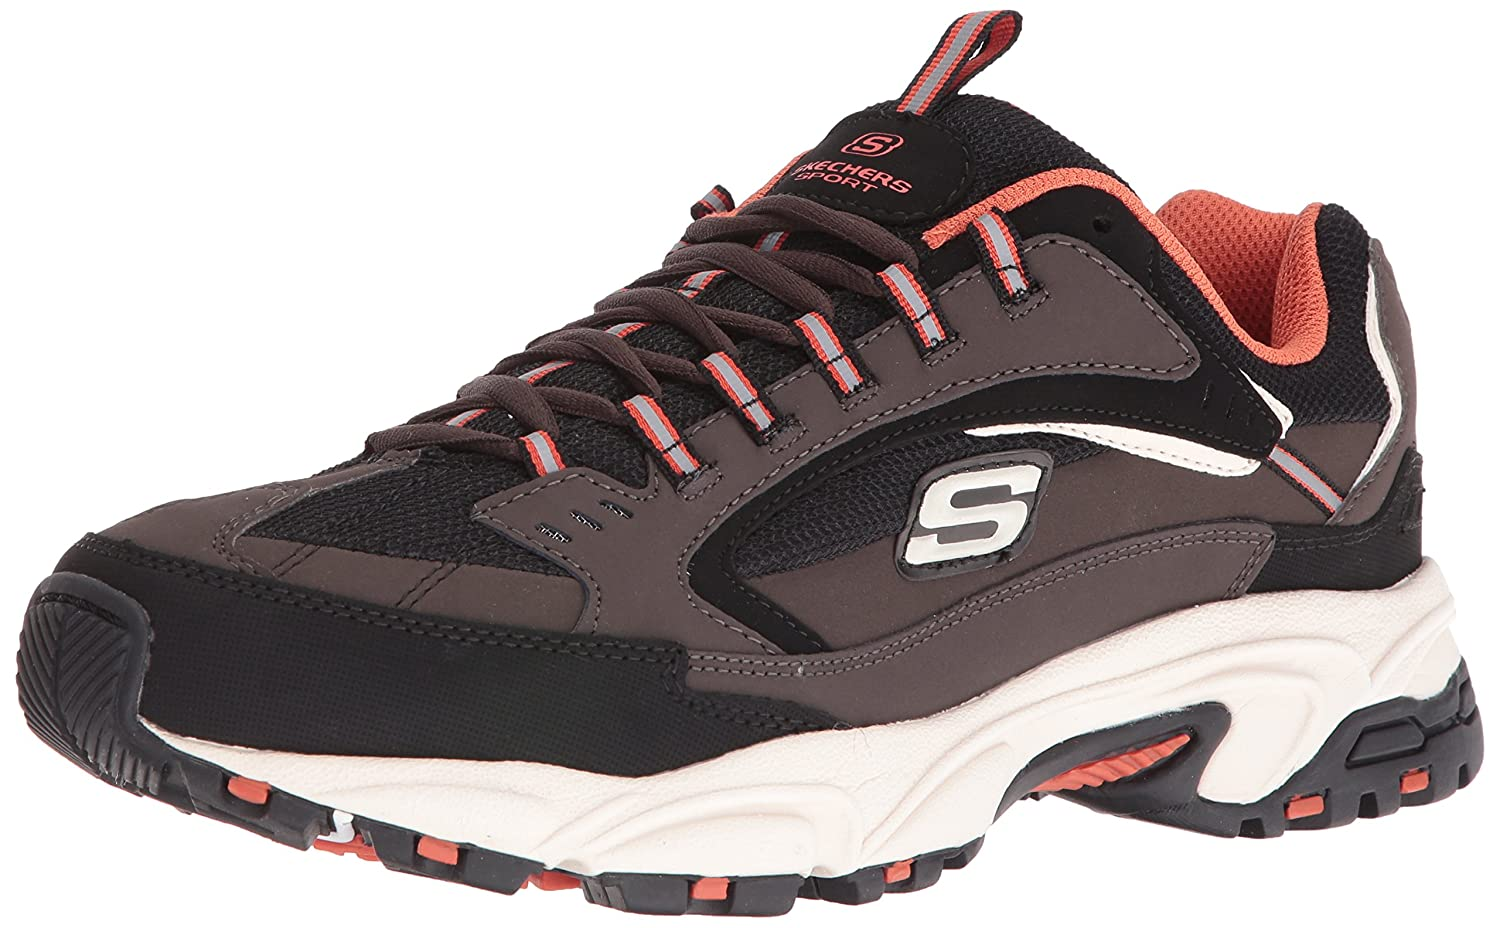 Skechers Sport Men's Stamina Nuovo Cutback Lace-Up Sneaker B01G6I8MFY 11 2E US|Brown/Black